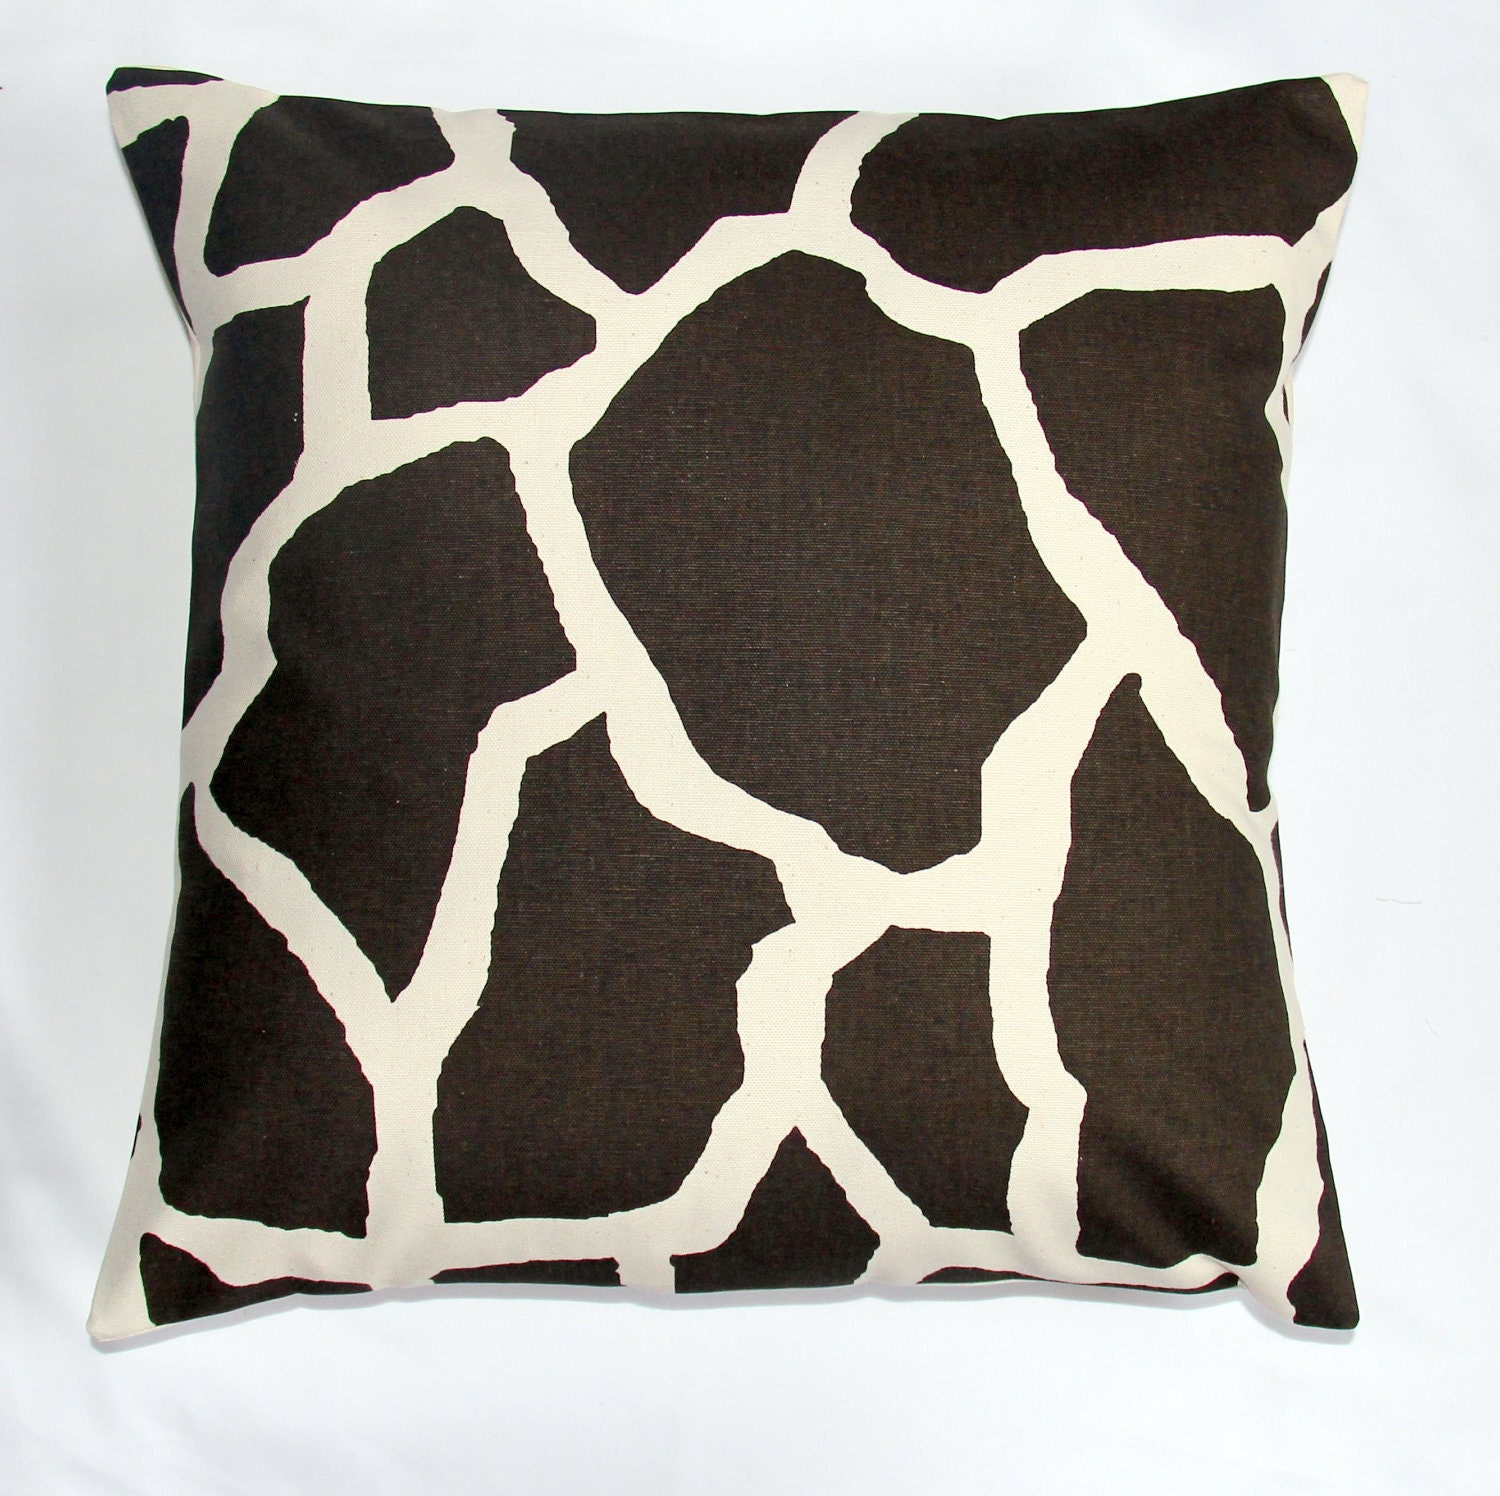 Pillow sofa pillow Giraffe Print cushion by ModernTouchDesigns